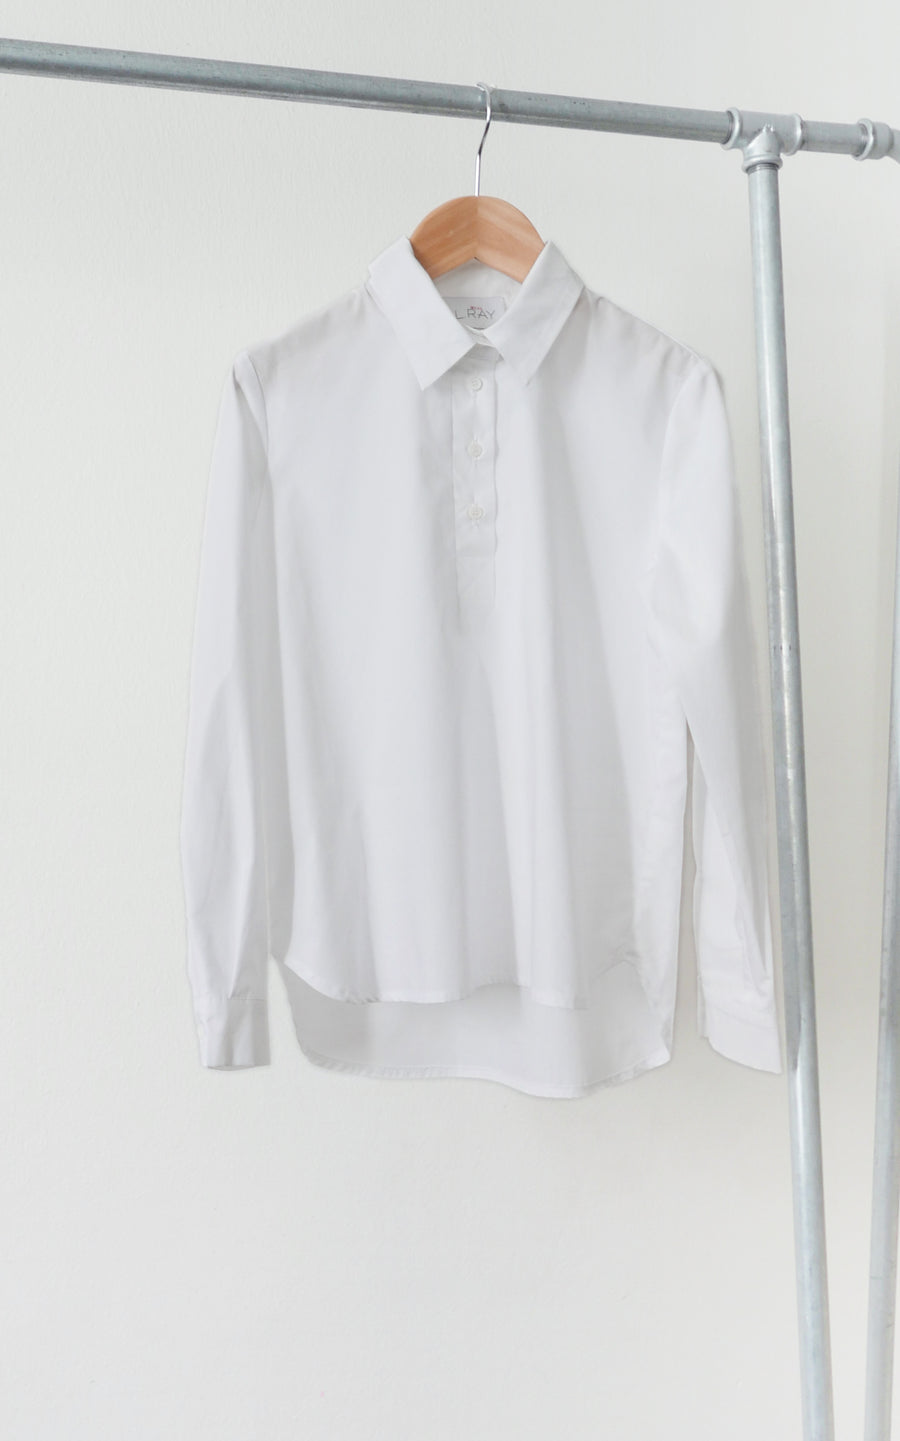 miss L. Ray Paz white shirt children and teen fashion